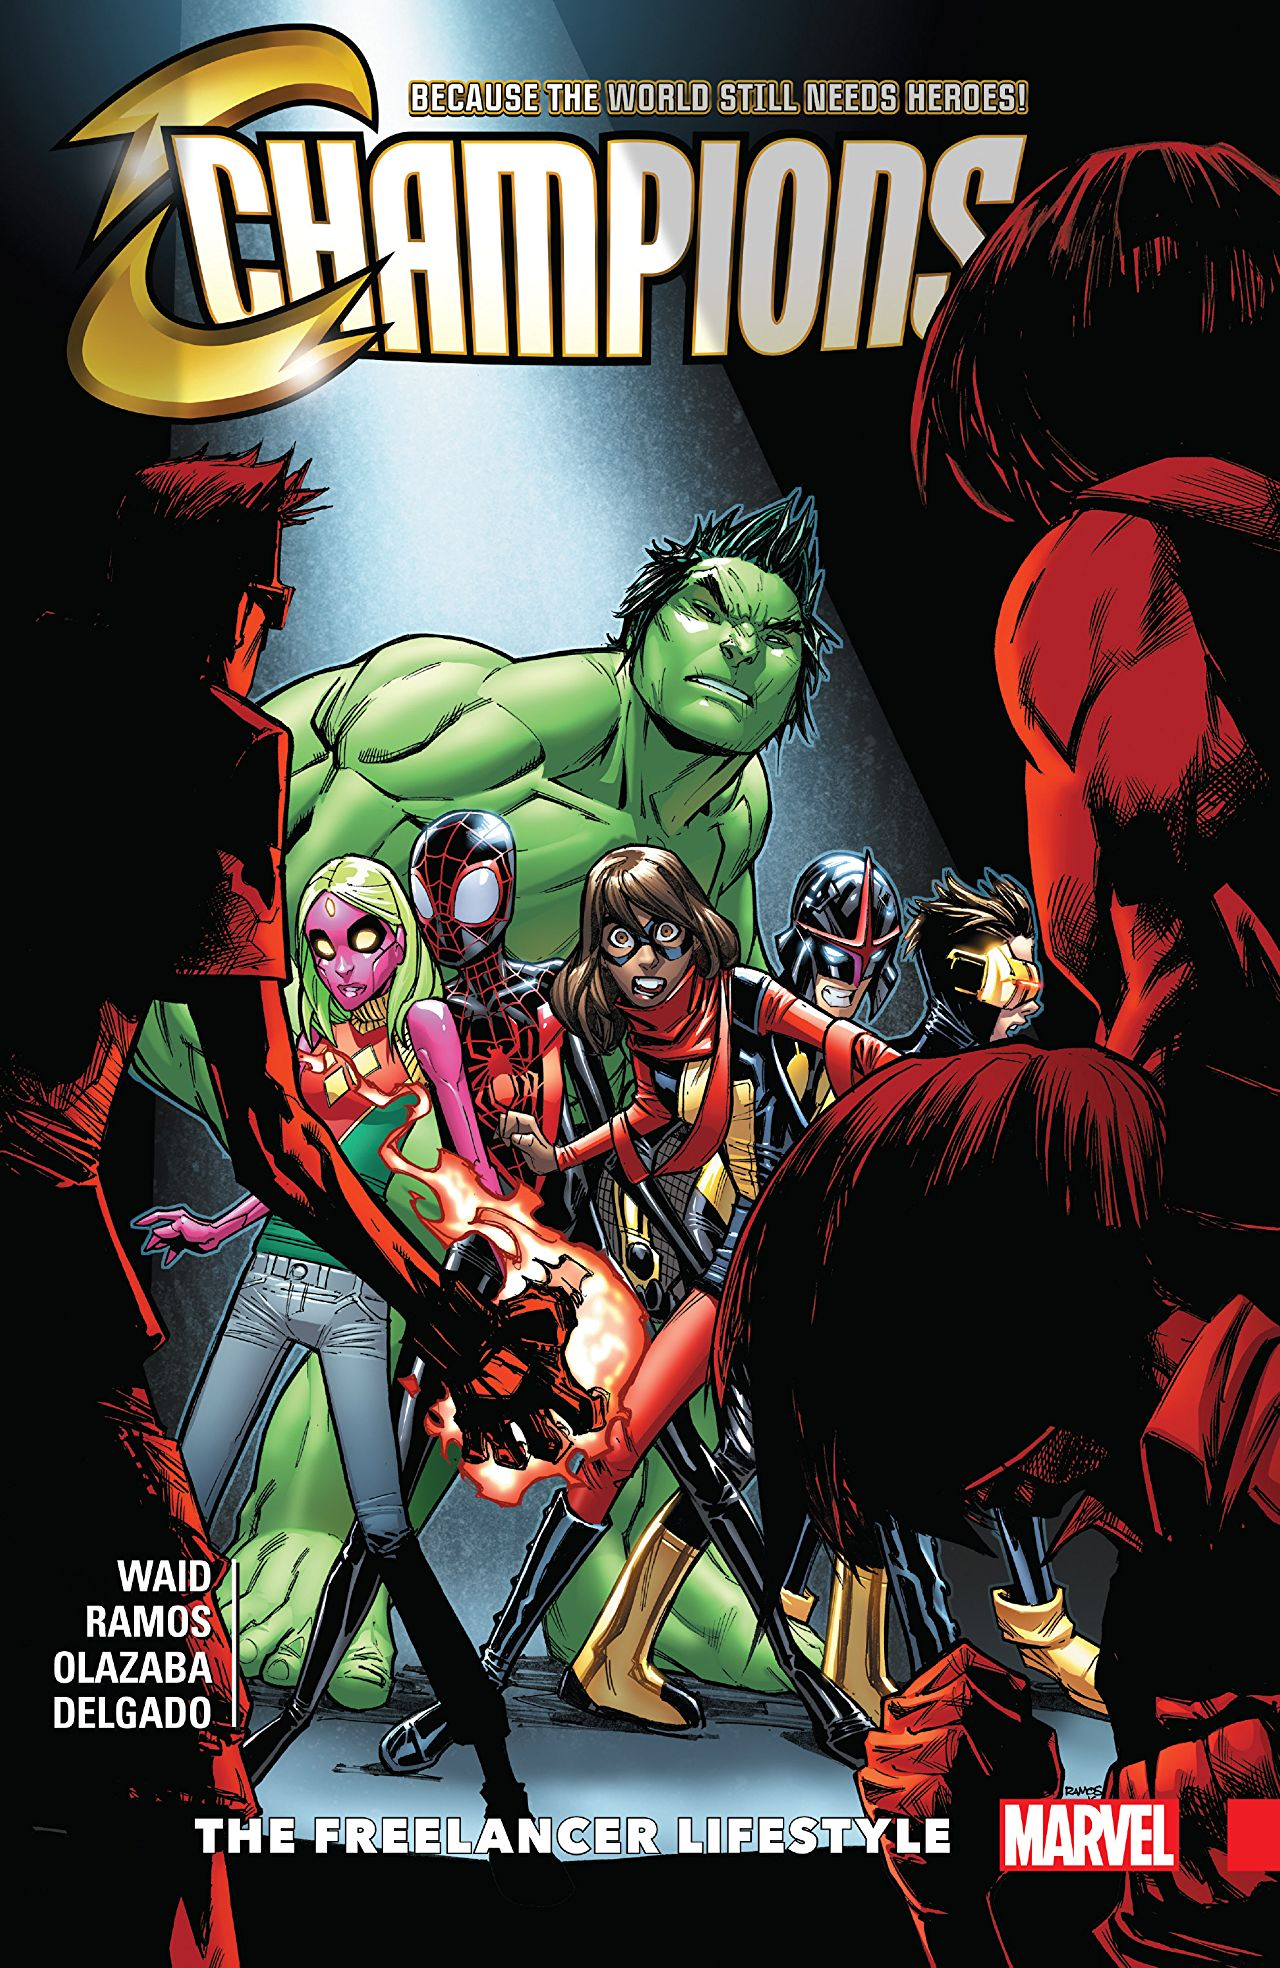 "Mark Waid and Humberto Ramos have been writing this tight team book for quite a while now and issues #6 through #12 are now out in trade paperback form. This trade involves a rival for-hire super team The Freelancers, includes a ""Secret Empire"" tie-in, and continues to develop Cyclops and Viv. Waid has a way of developing his characters, feeling progressive with his commentary on politics and social issues, and has his narrative woven together with Ramos' clean and kinetic lines."